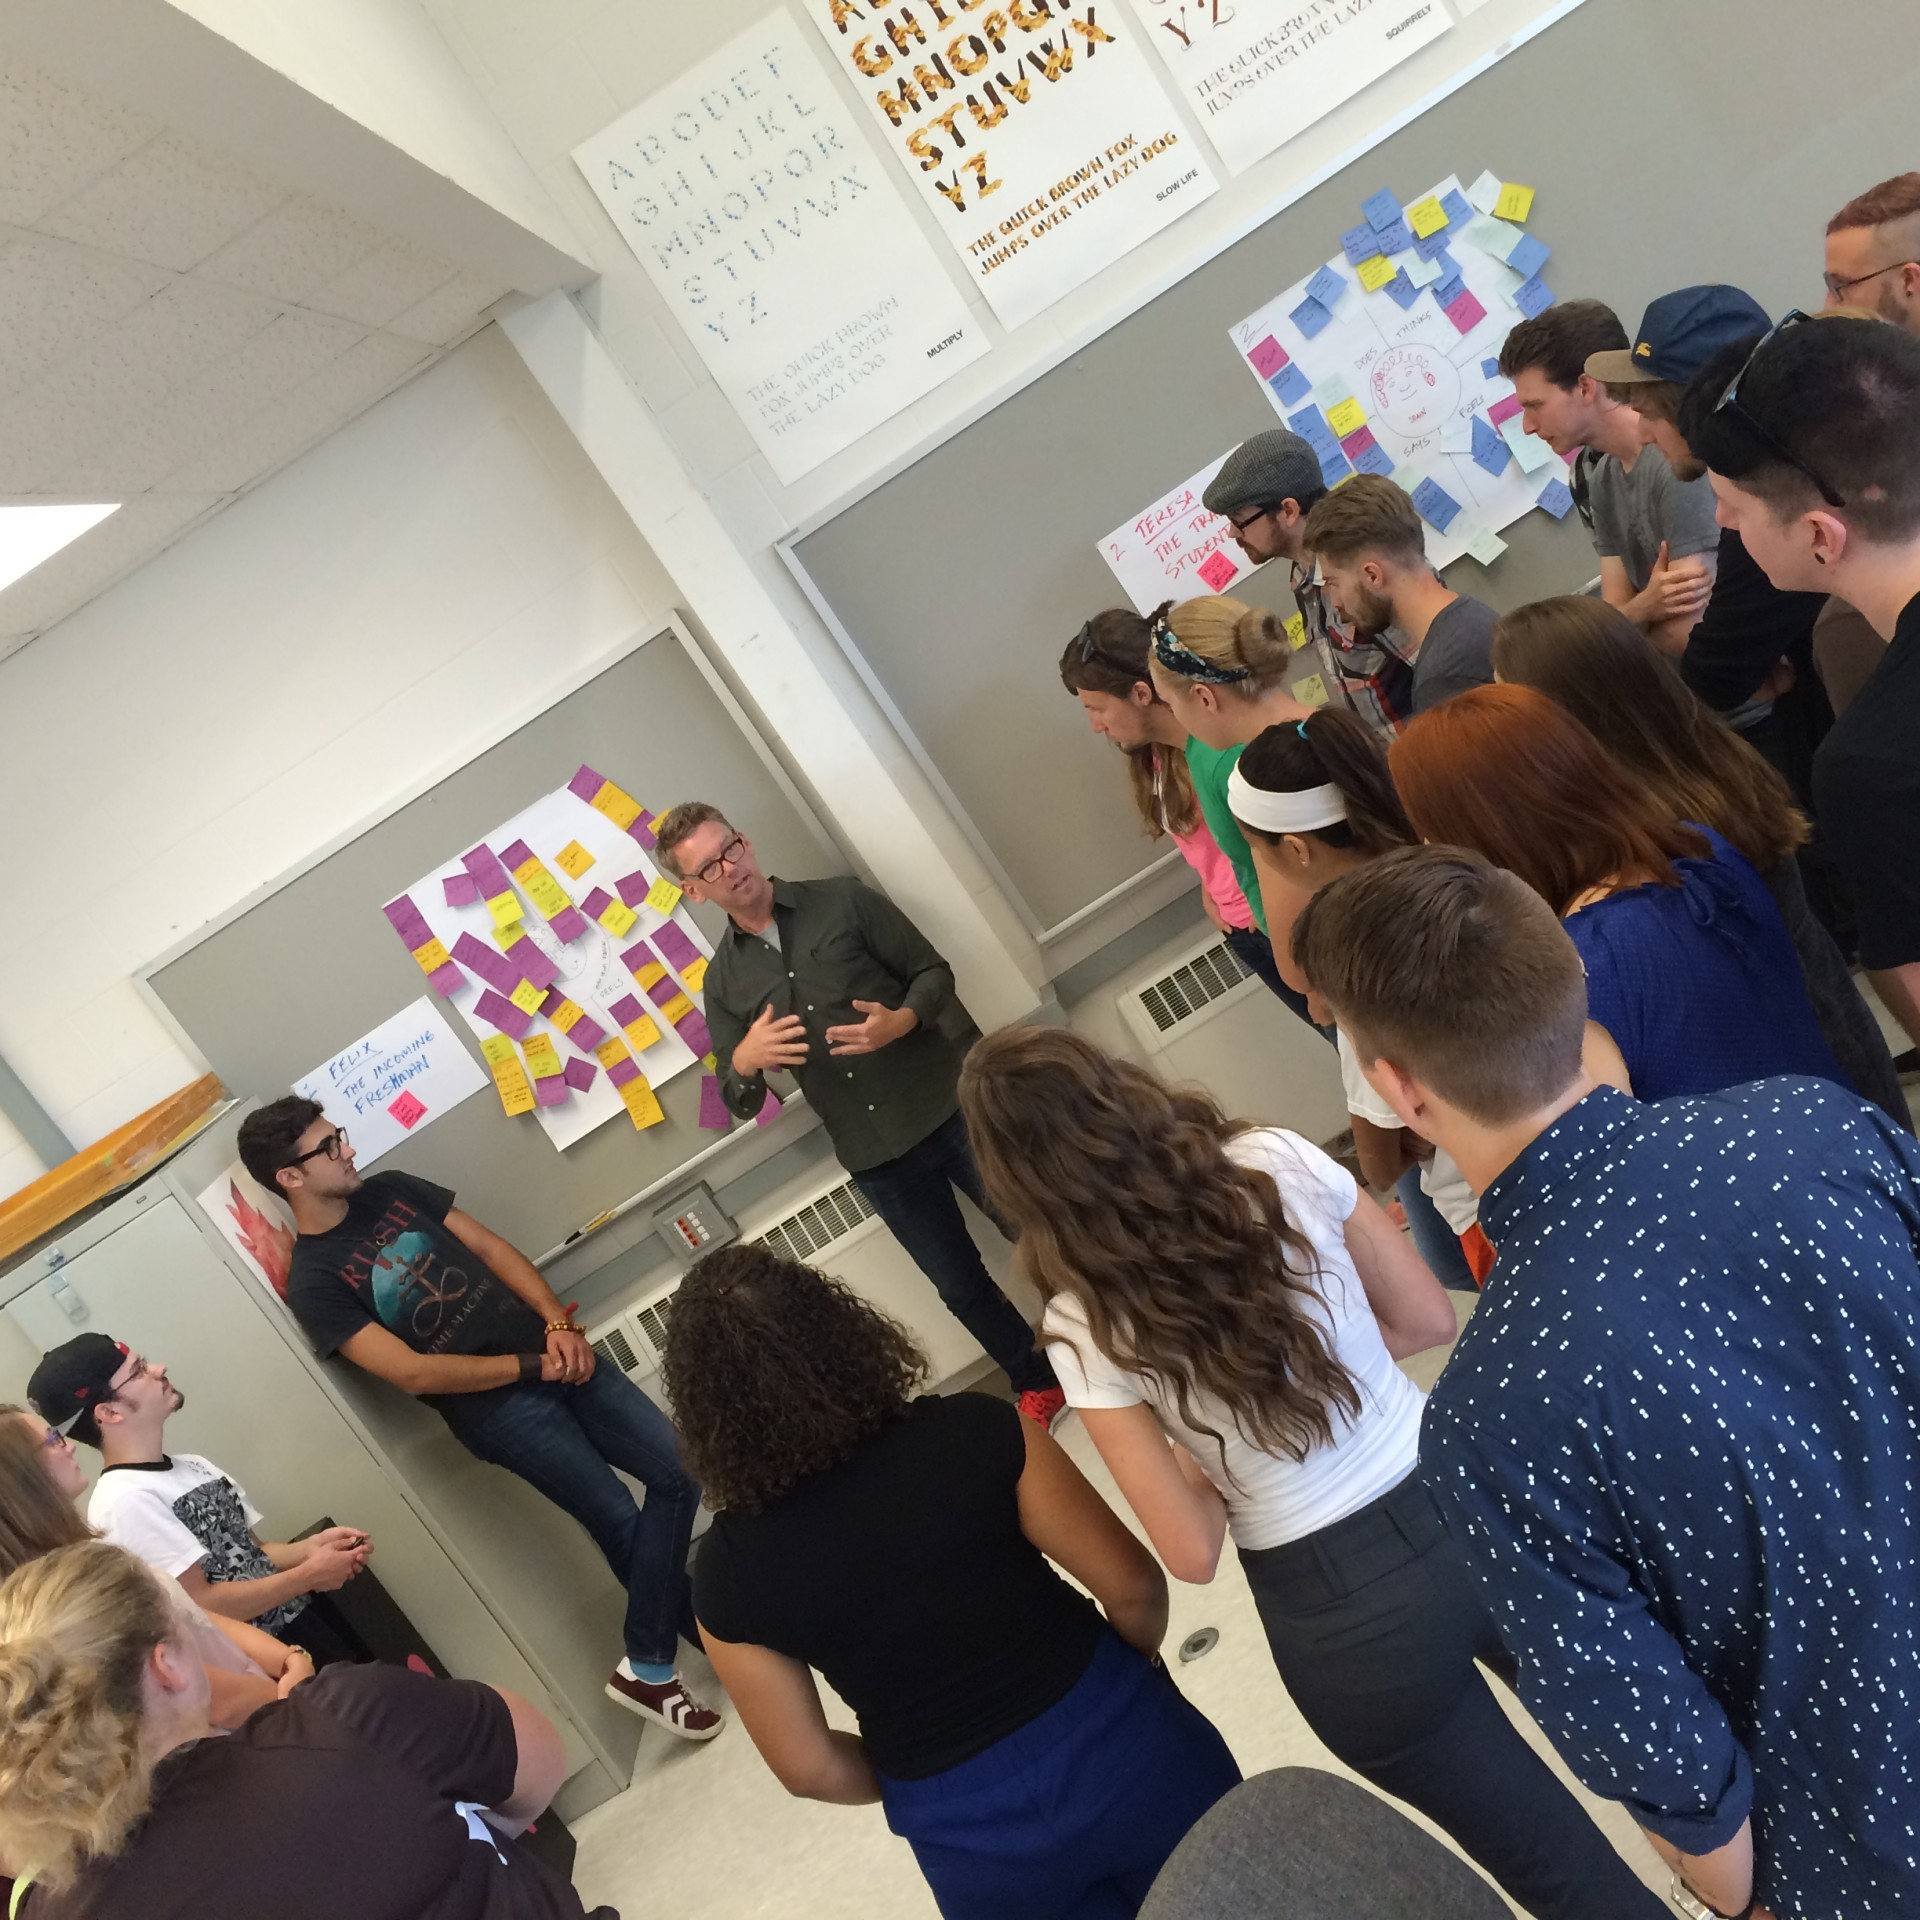 Doug Powell, Leader of IBM's Design Revolution hosts BGSUGD Design Workshop with Undergrads